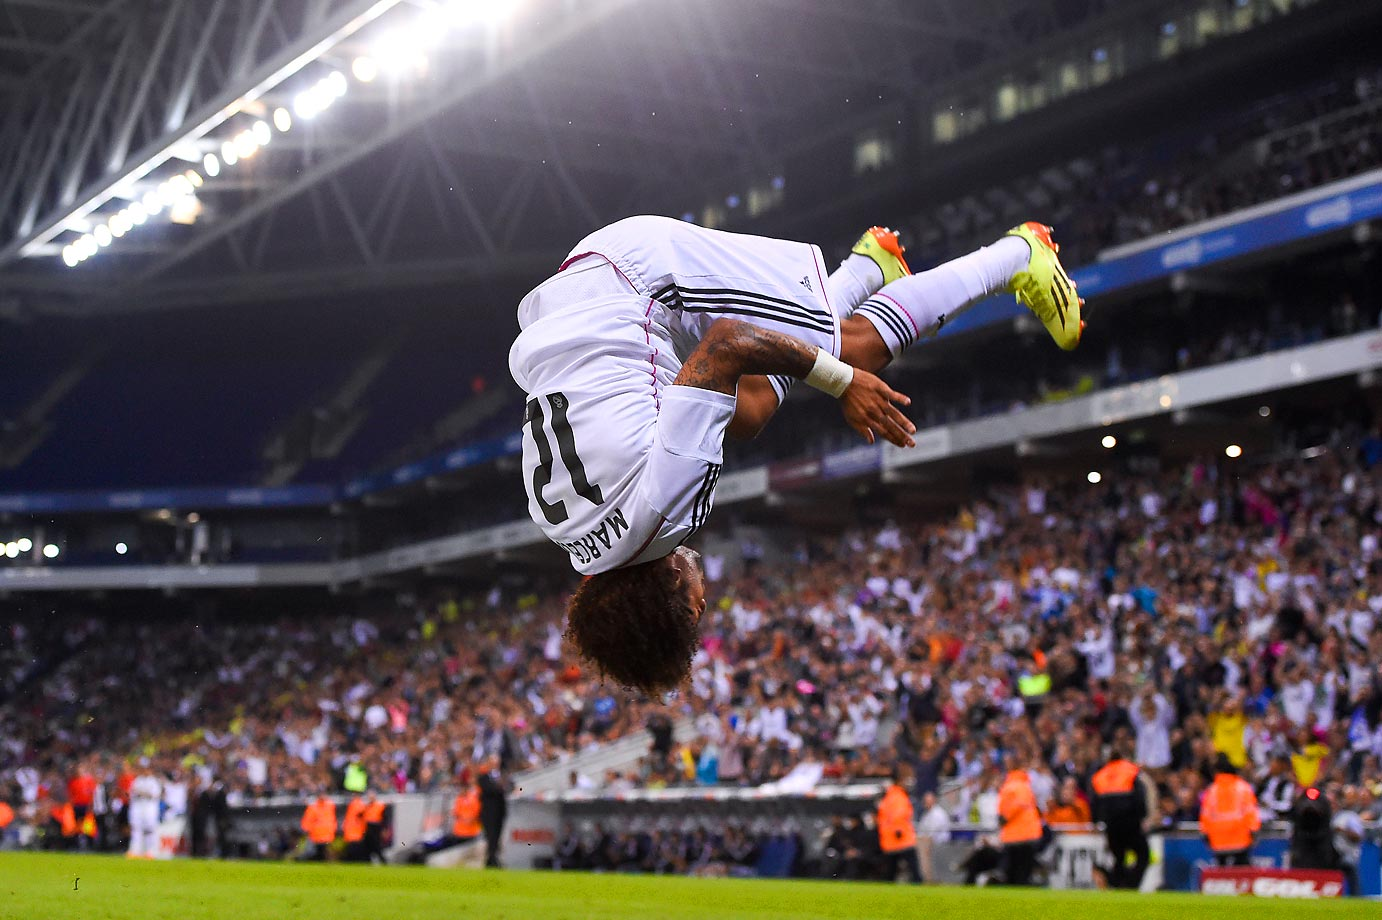 Marcelo Vieira of Real Madrid CF flips after scoring the fourth goal against Cornella.